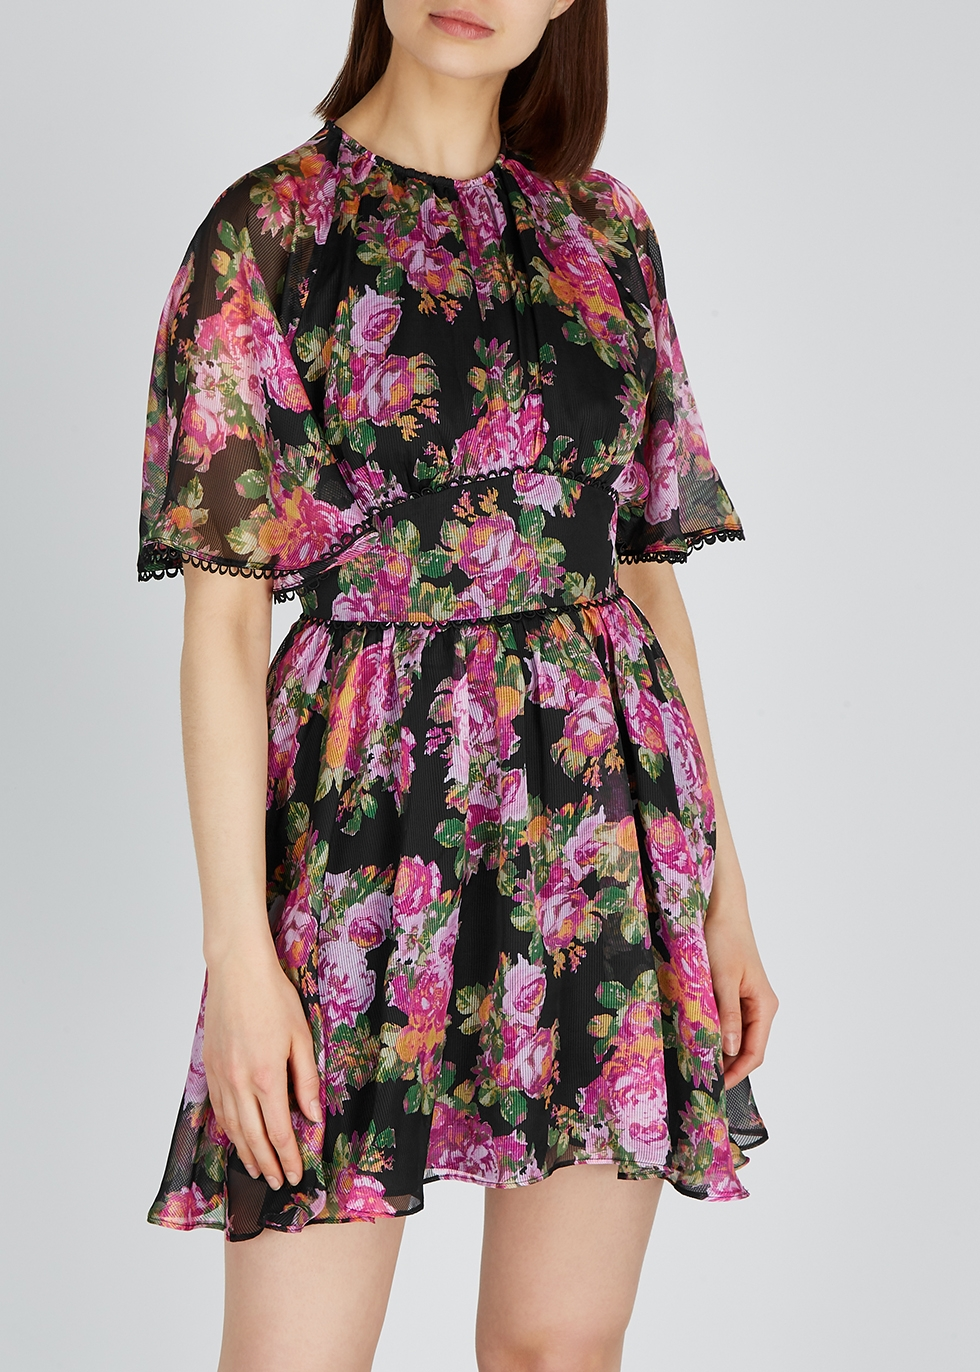 Oblivion floral georgette mini dress - KEEPSAKE